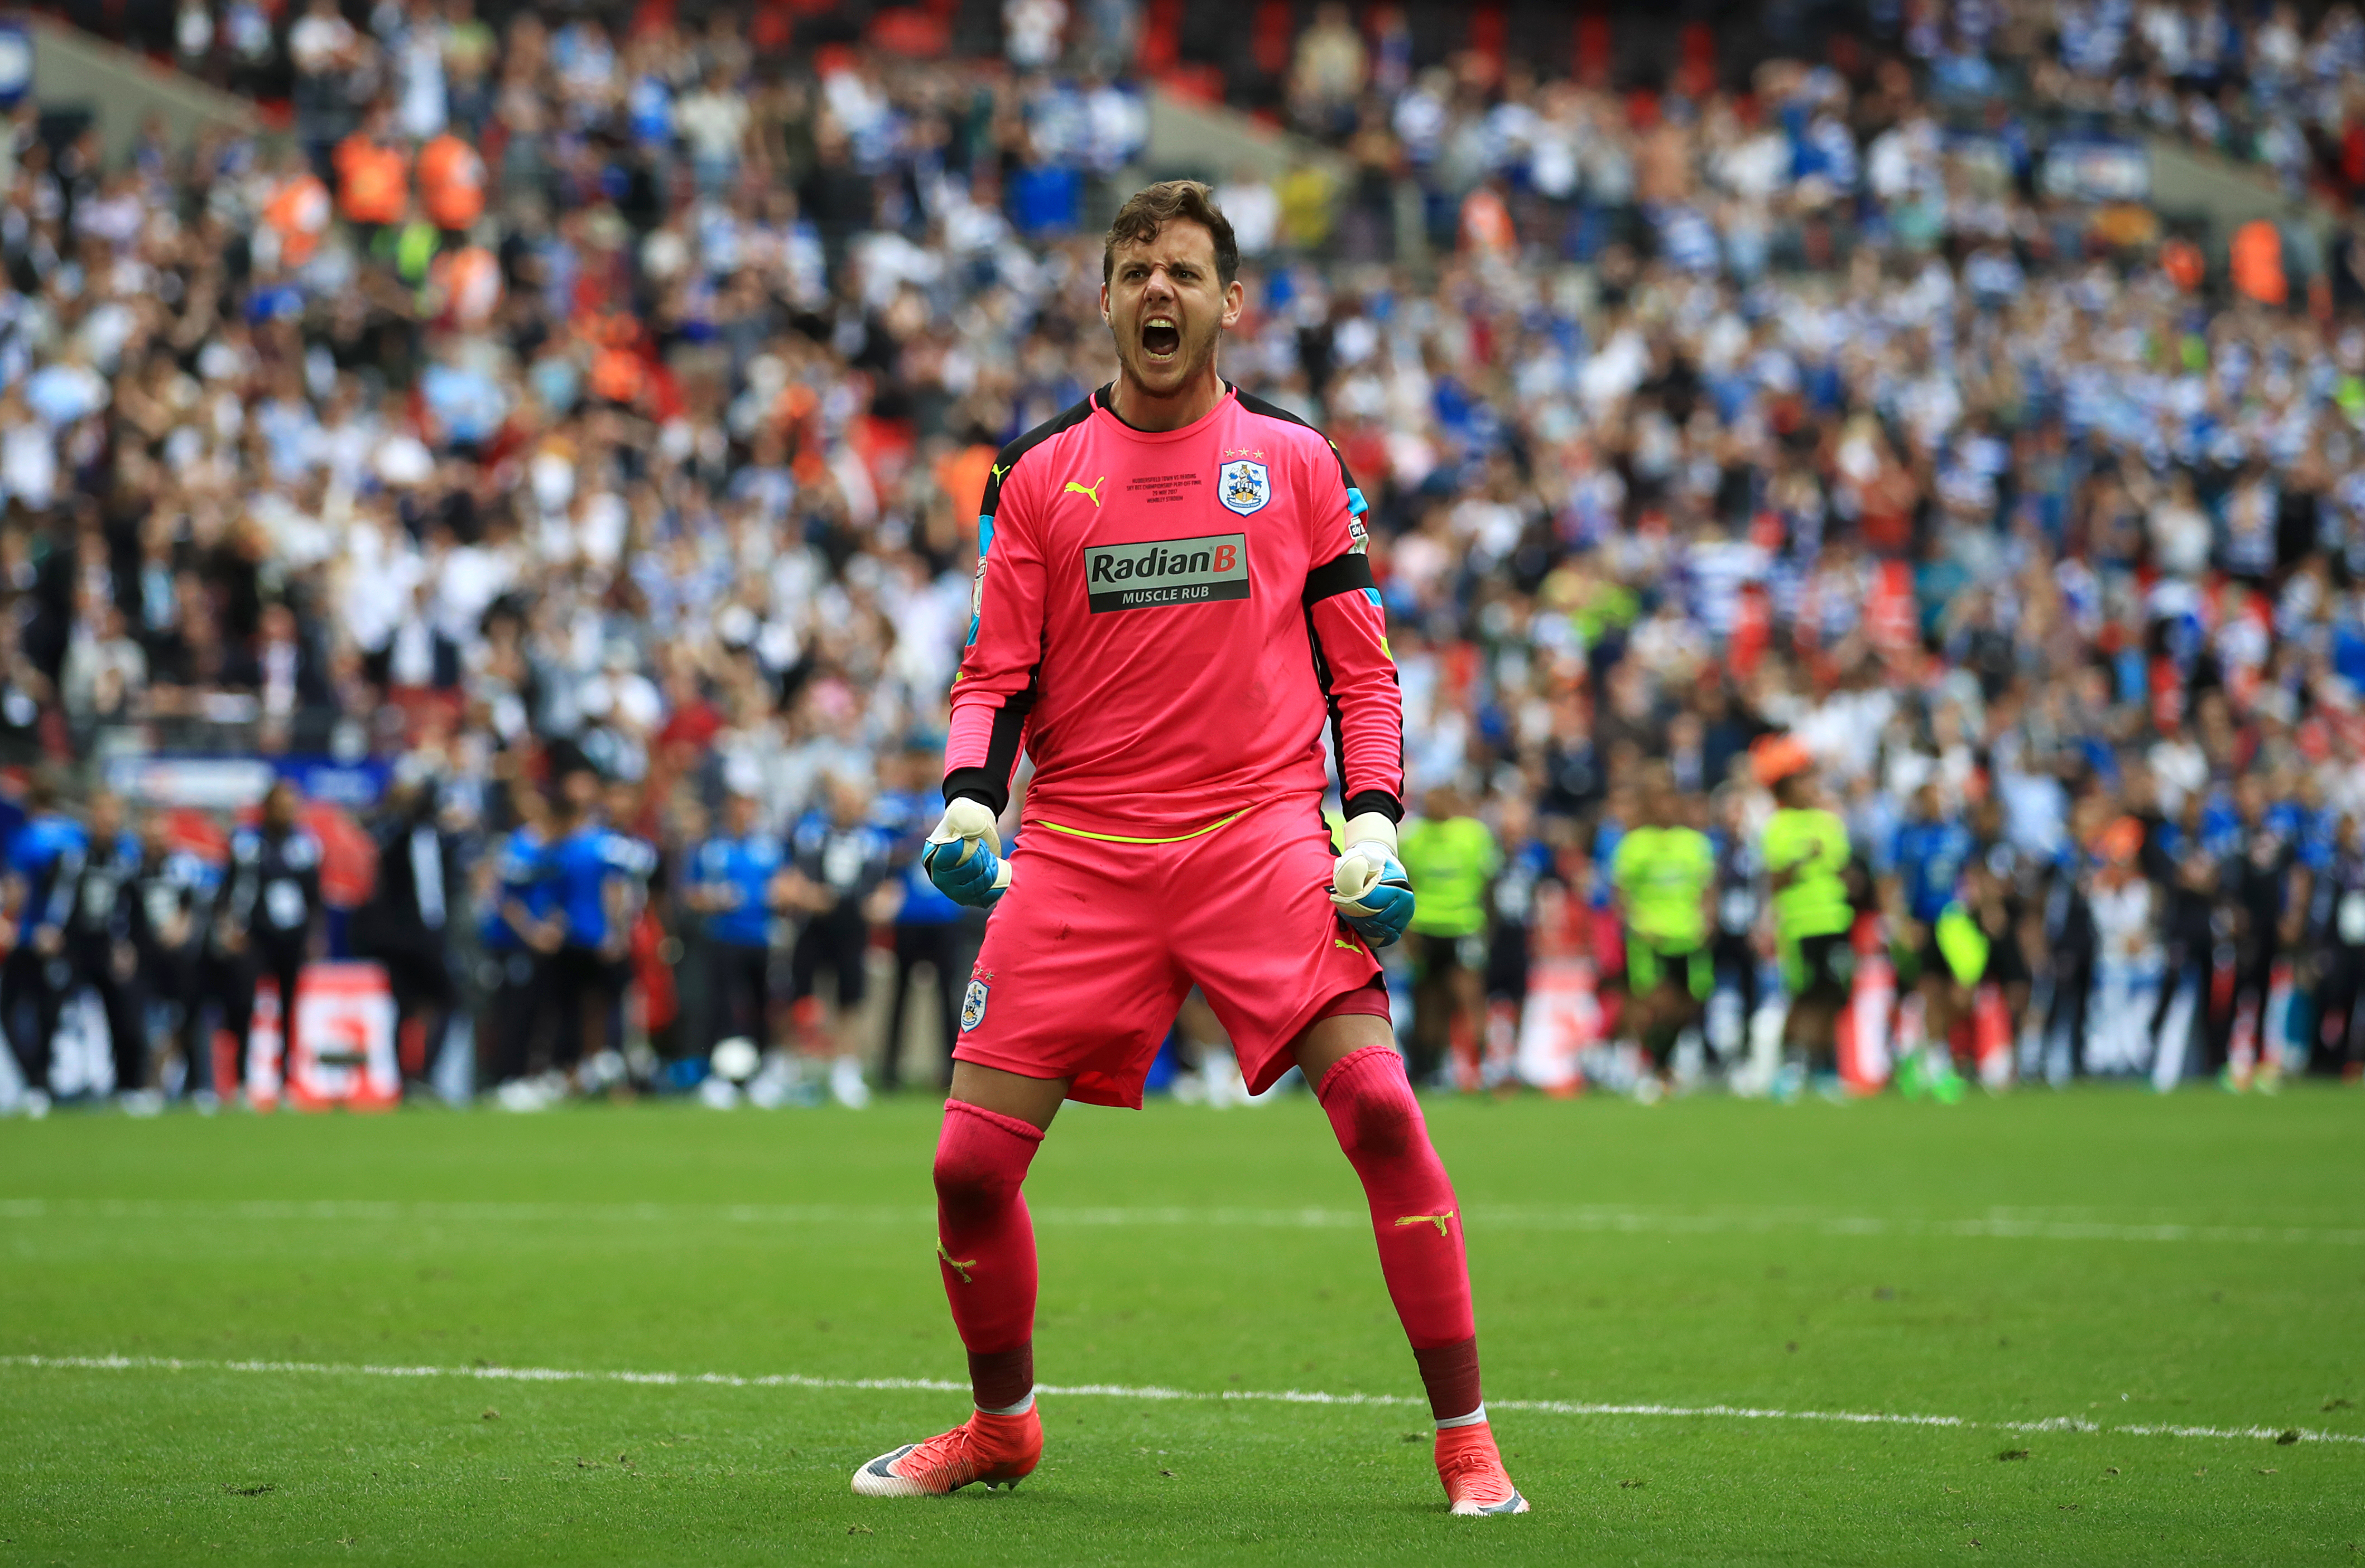 Ward's spell at Huddersfield Town helped the club win promotion to the Premier League. Image PA Images